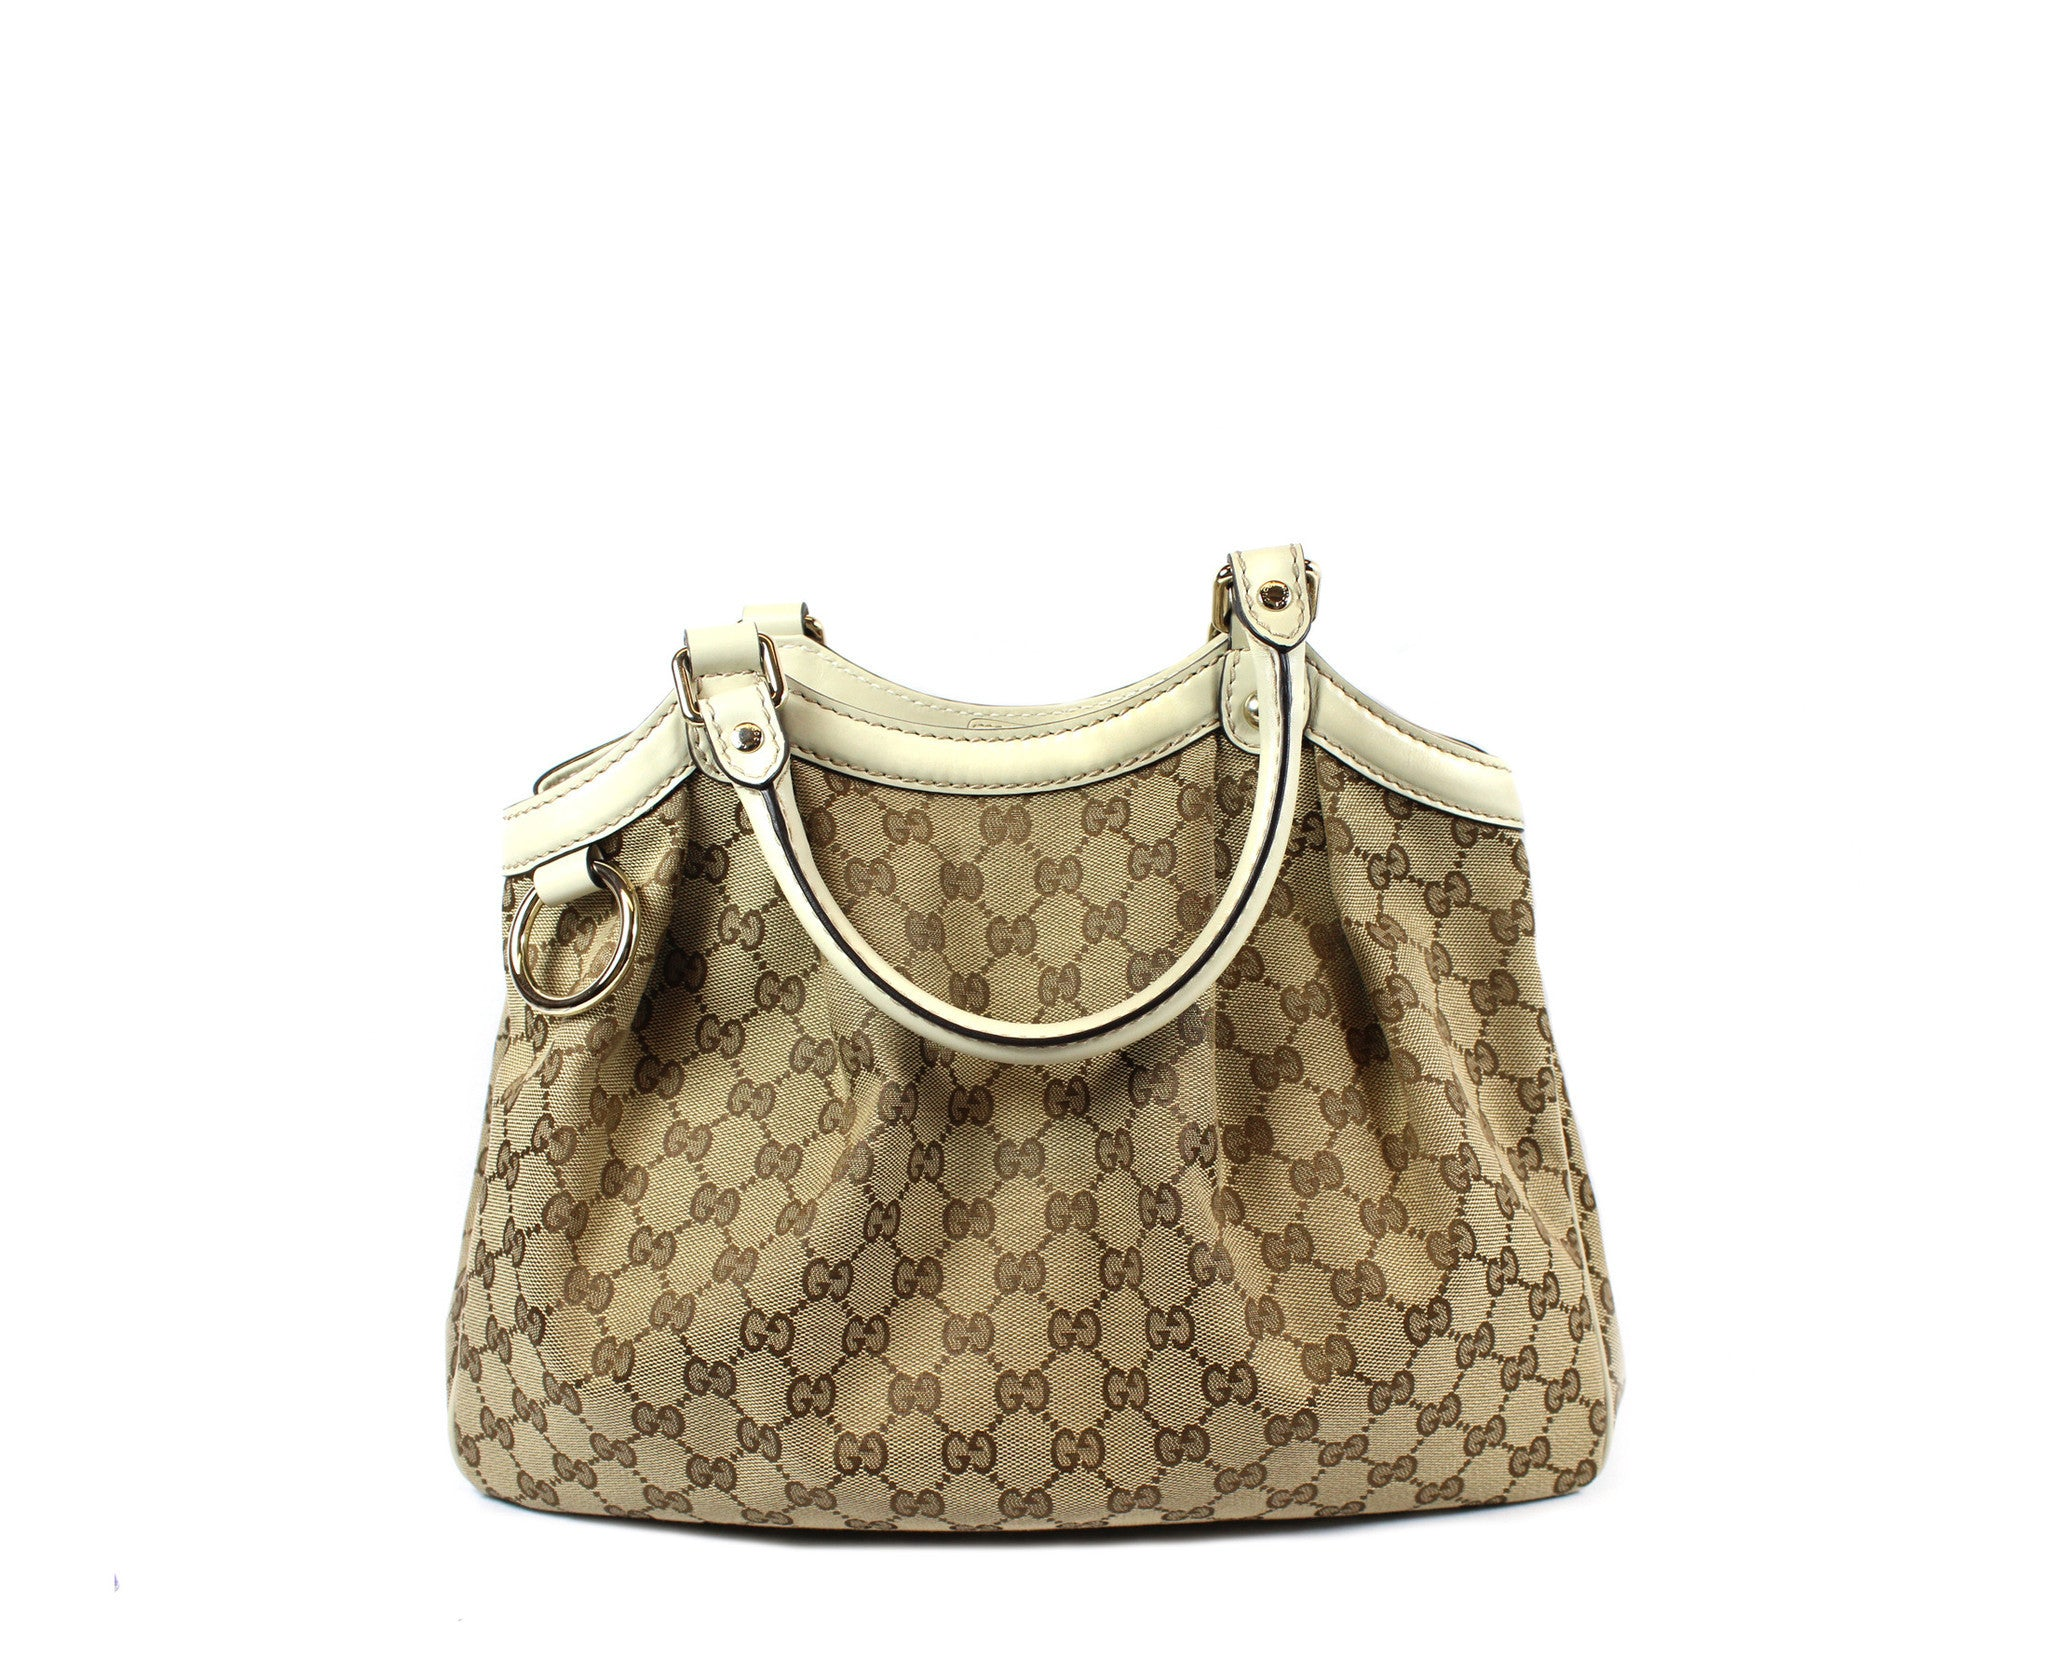 'SOLD' Gucci 'Sukey' GG Canvas and Ivory Leather Tote - Encore Consignment - 2